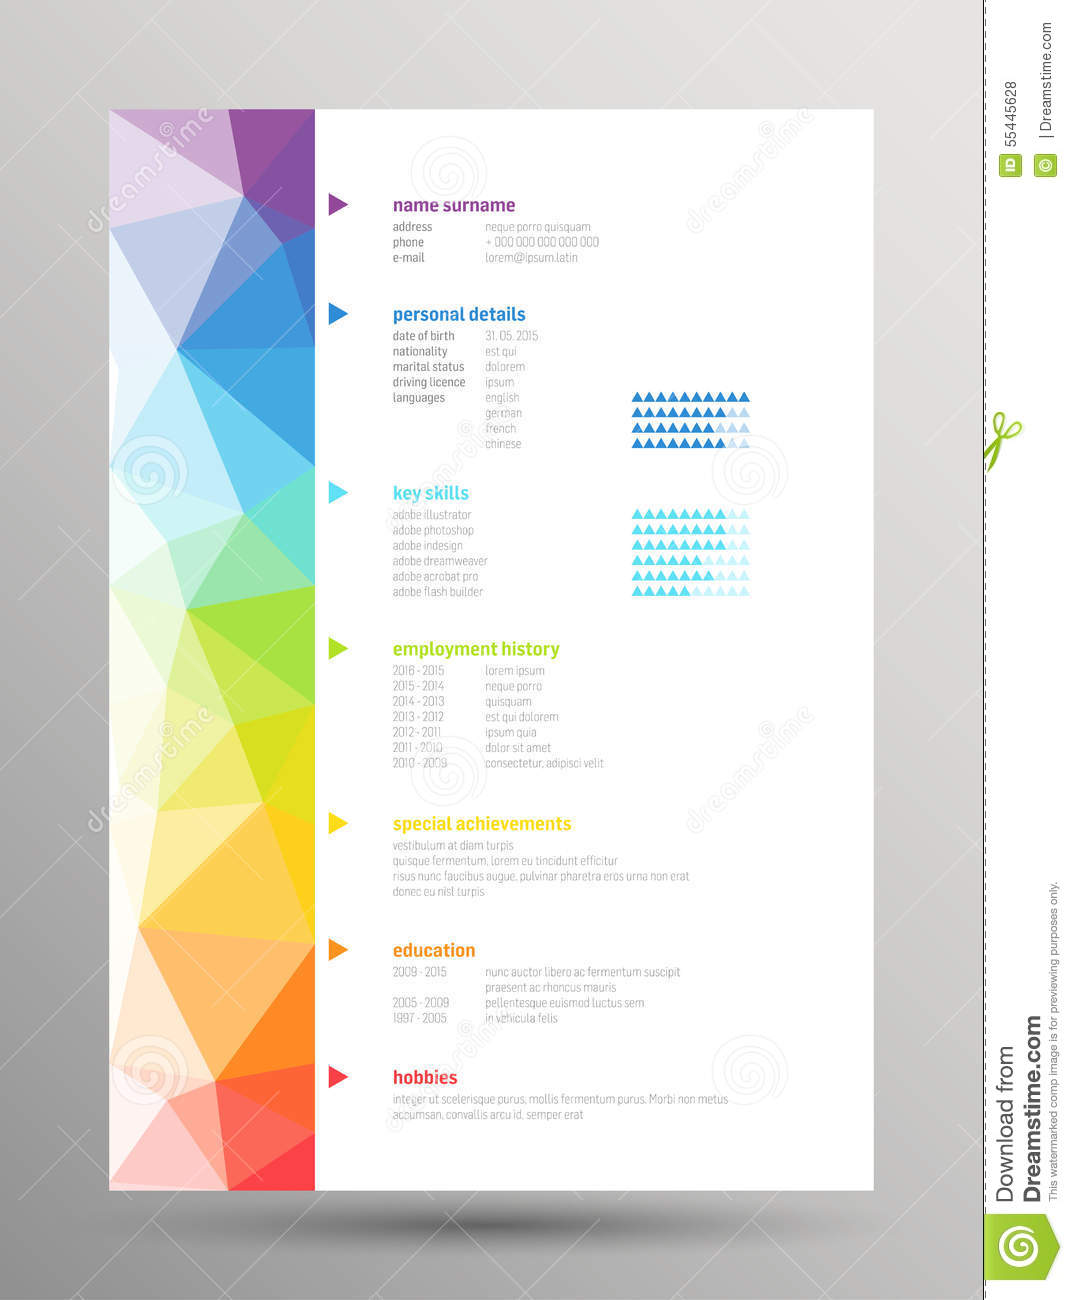 free resume templates print resume templates resume curriculum vitae stock vector image 55445628 - Free Resume Templates To Print